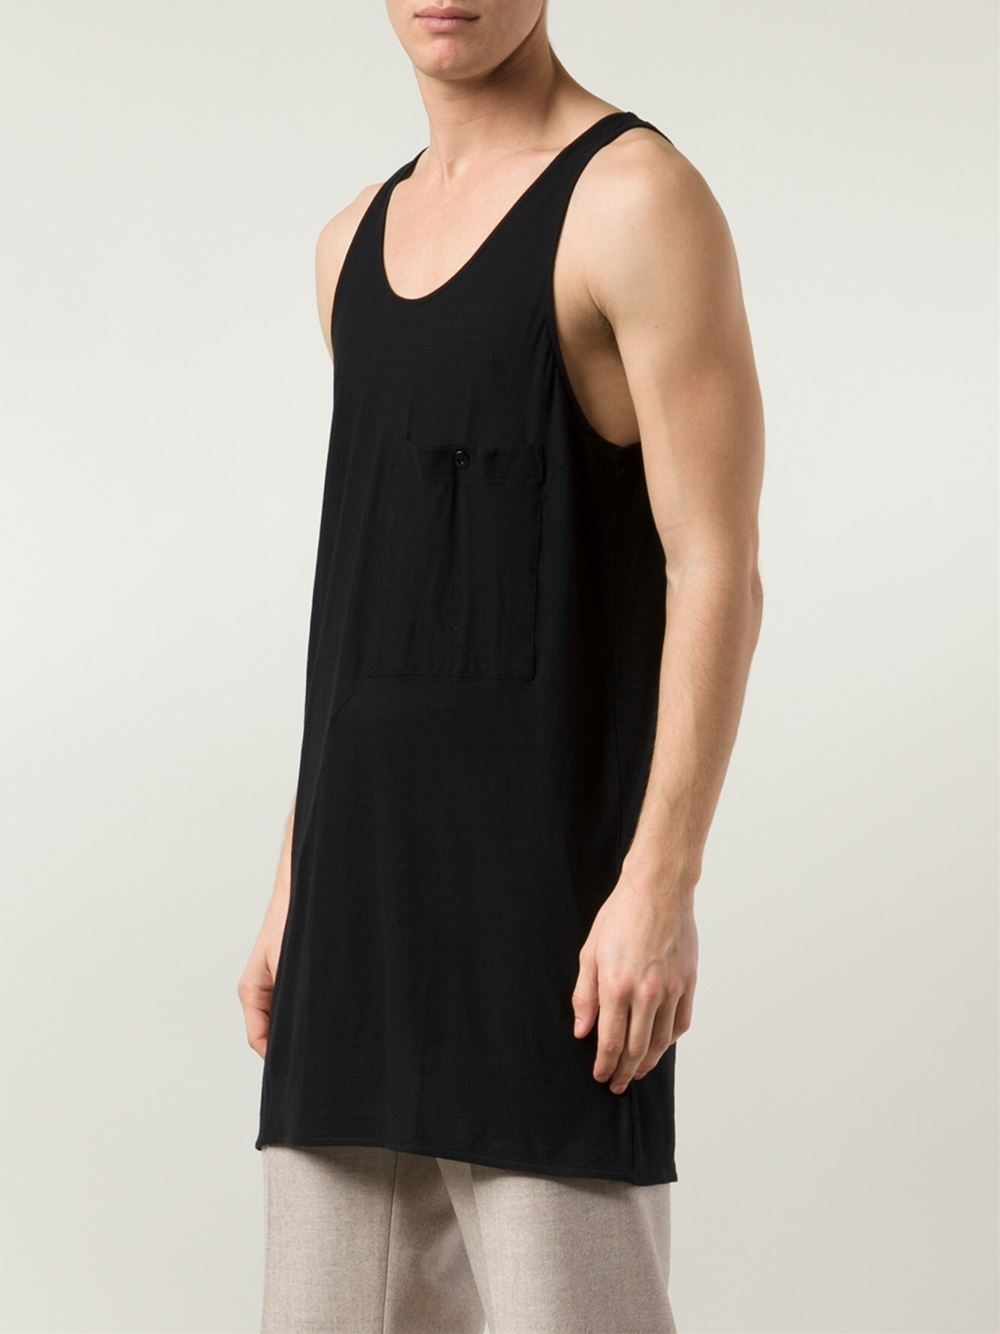 ann-demeulemeester-black-oversized-tank-top-product-1-27461678-0-478140149-normal